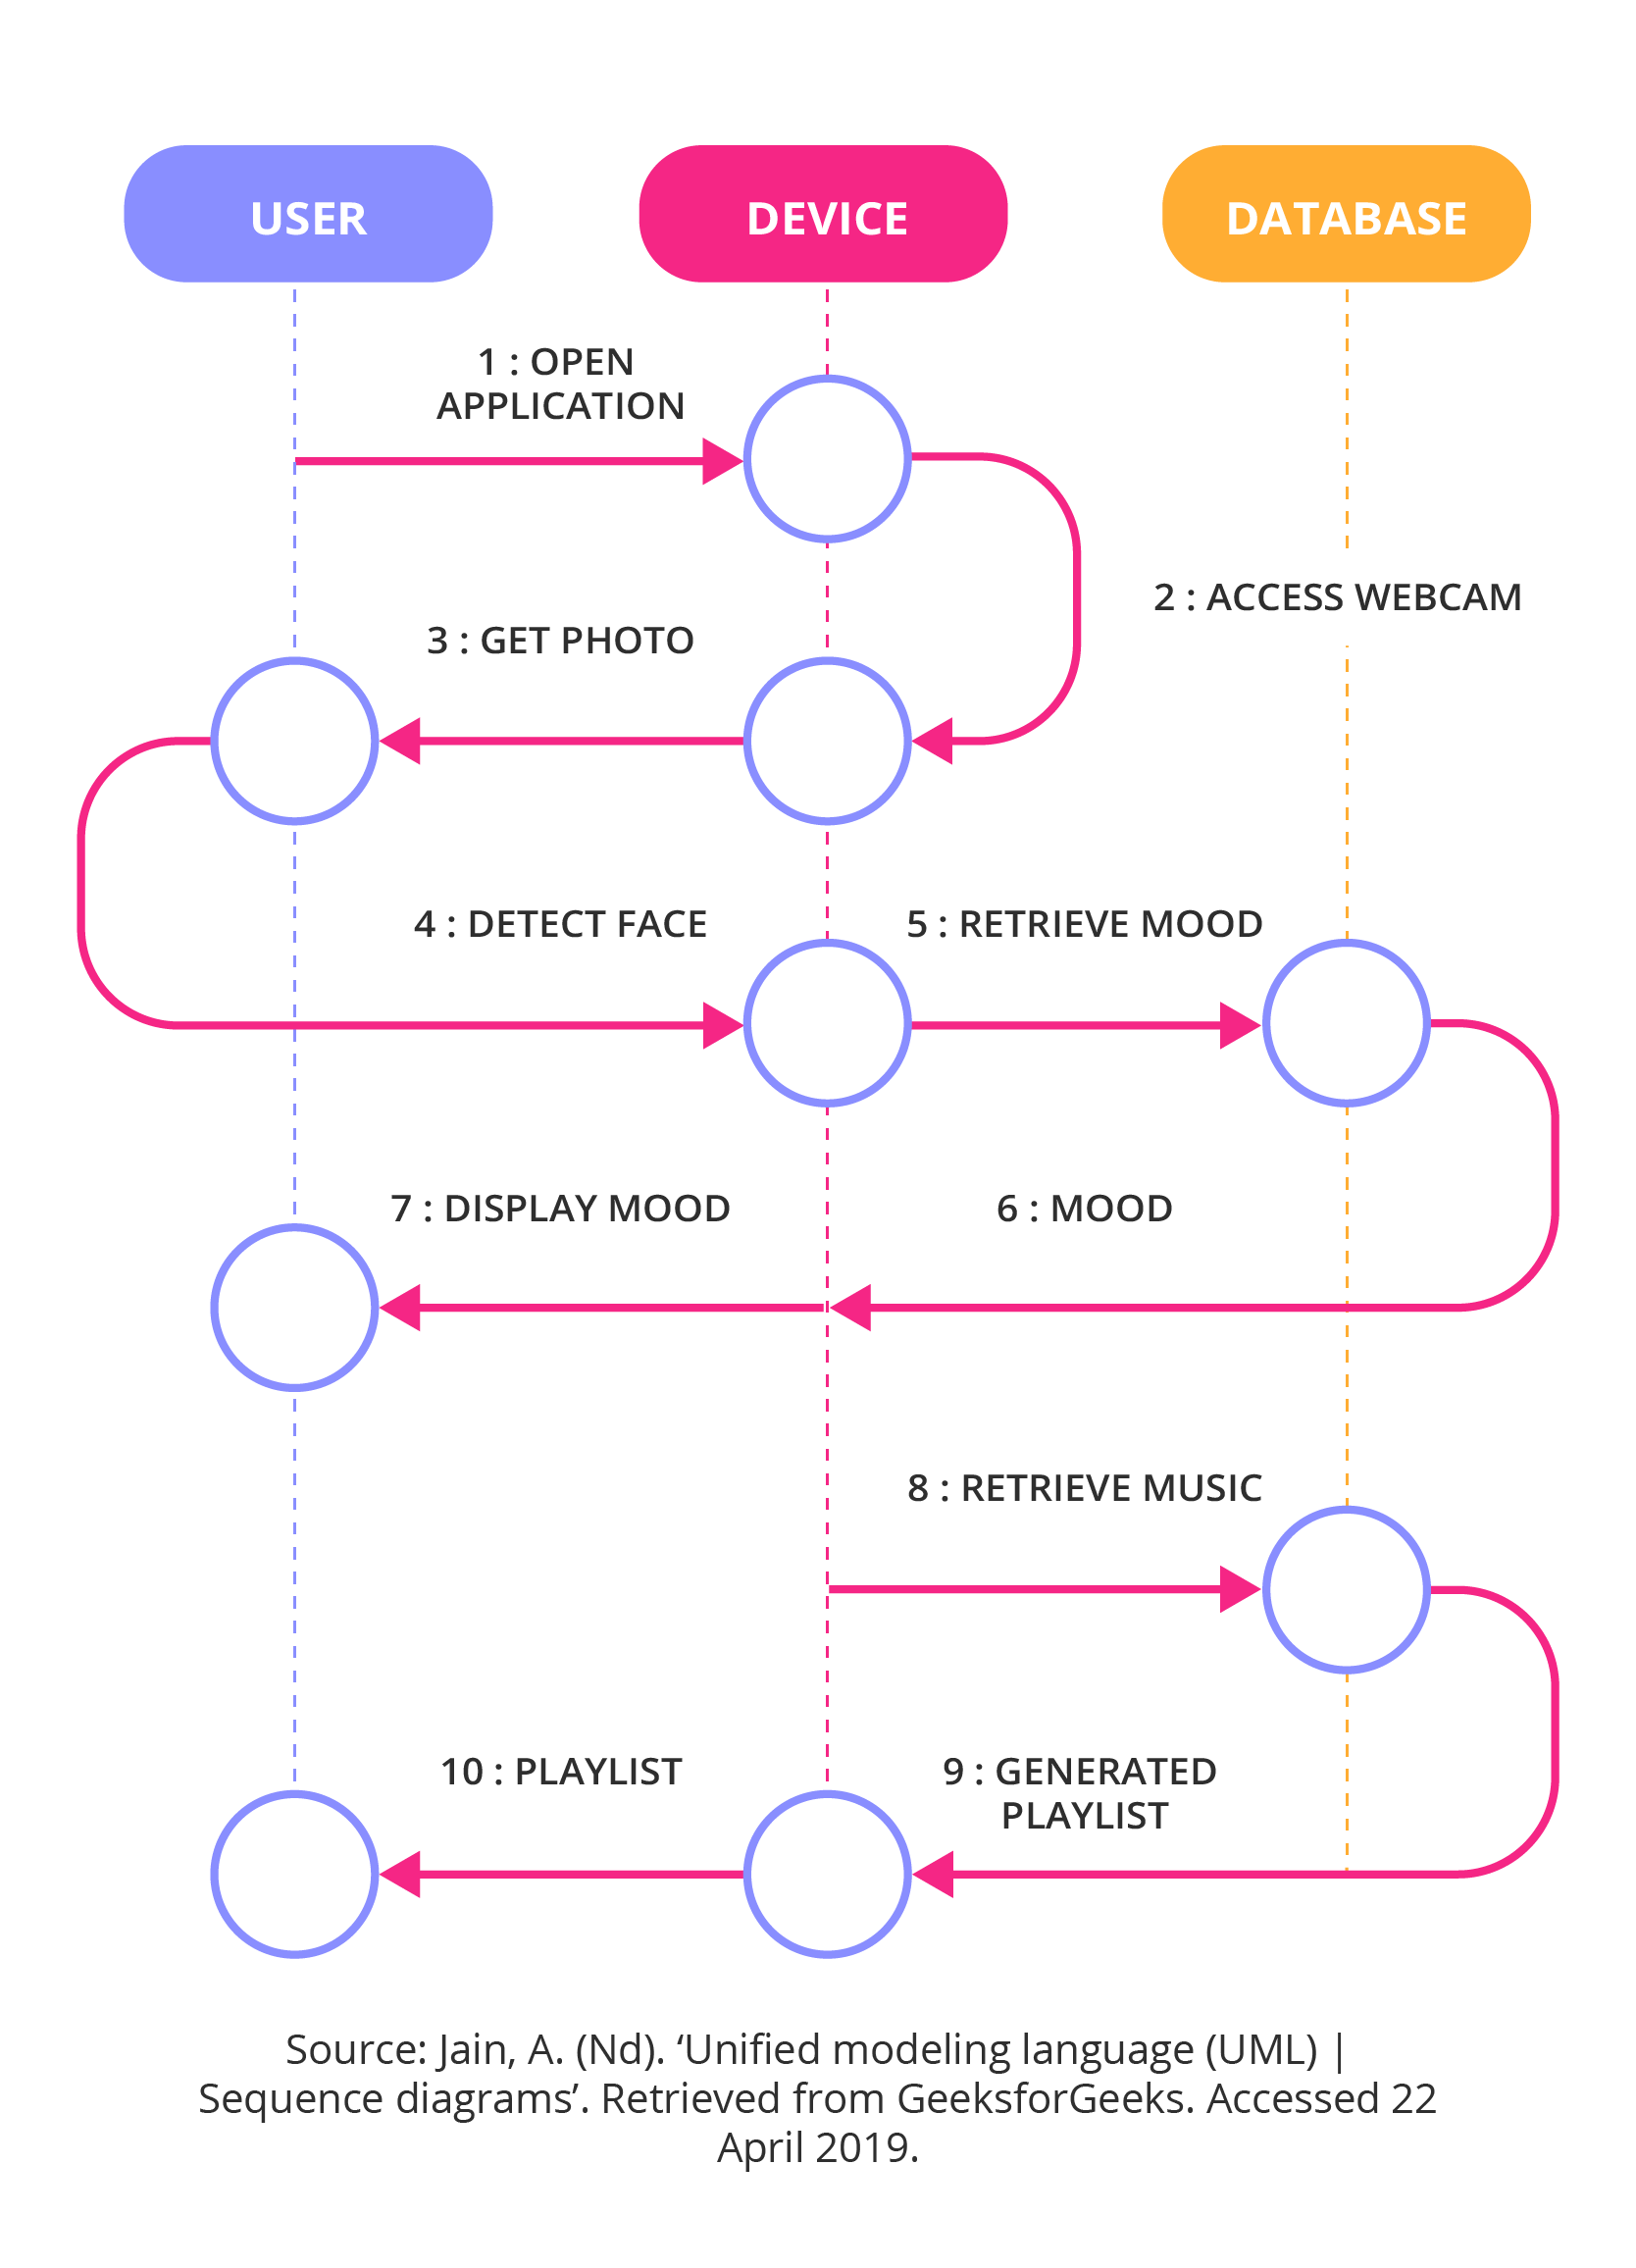 Role interaction diagrams